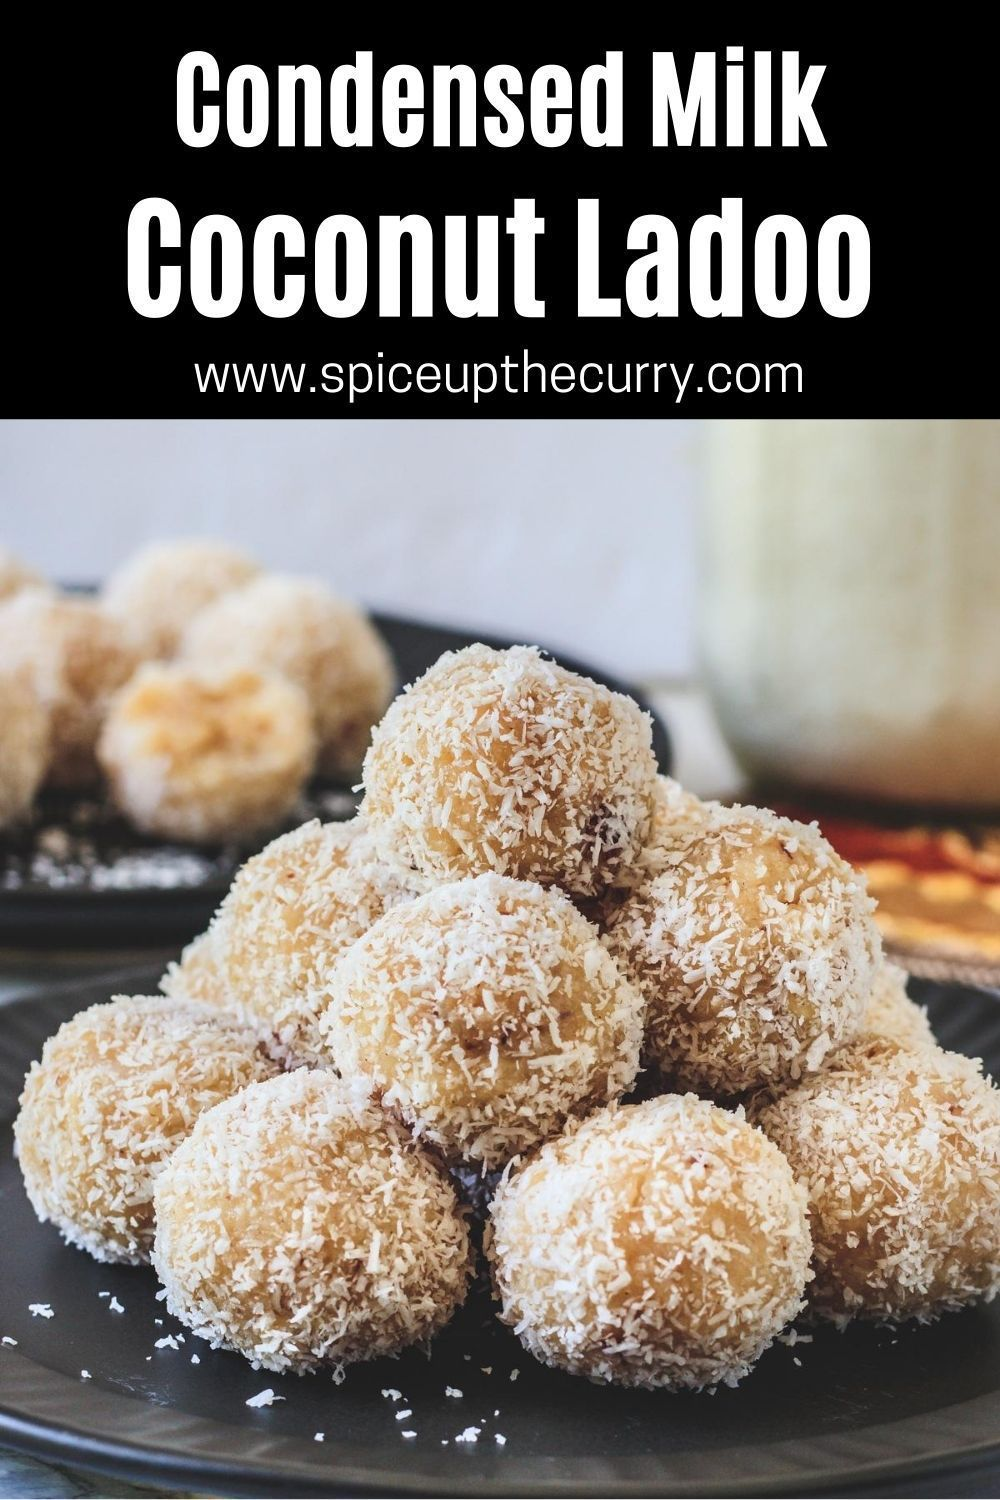 Coconut Ladoo Recipe With Condensed Milk Spice Up The Curry Recipe In 2020 Indian Dessert Recipes Vegetarian Desserts Indian Food Recipes